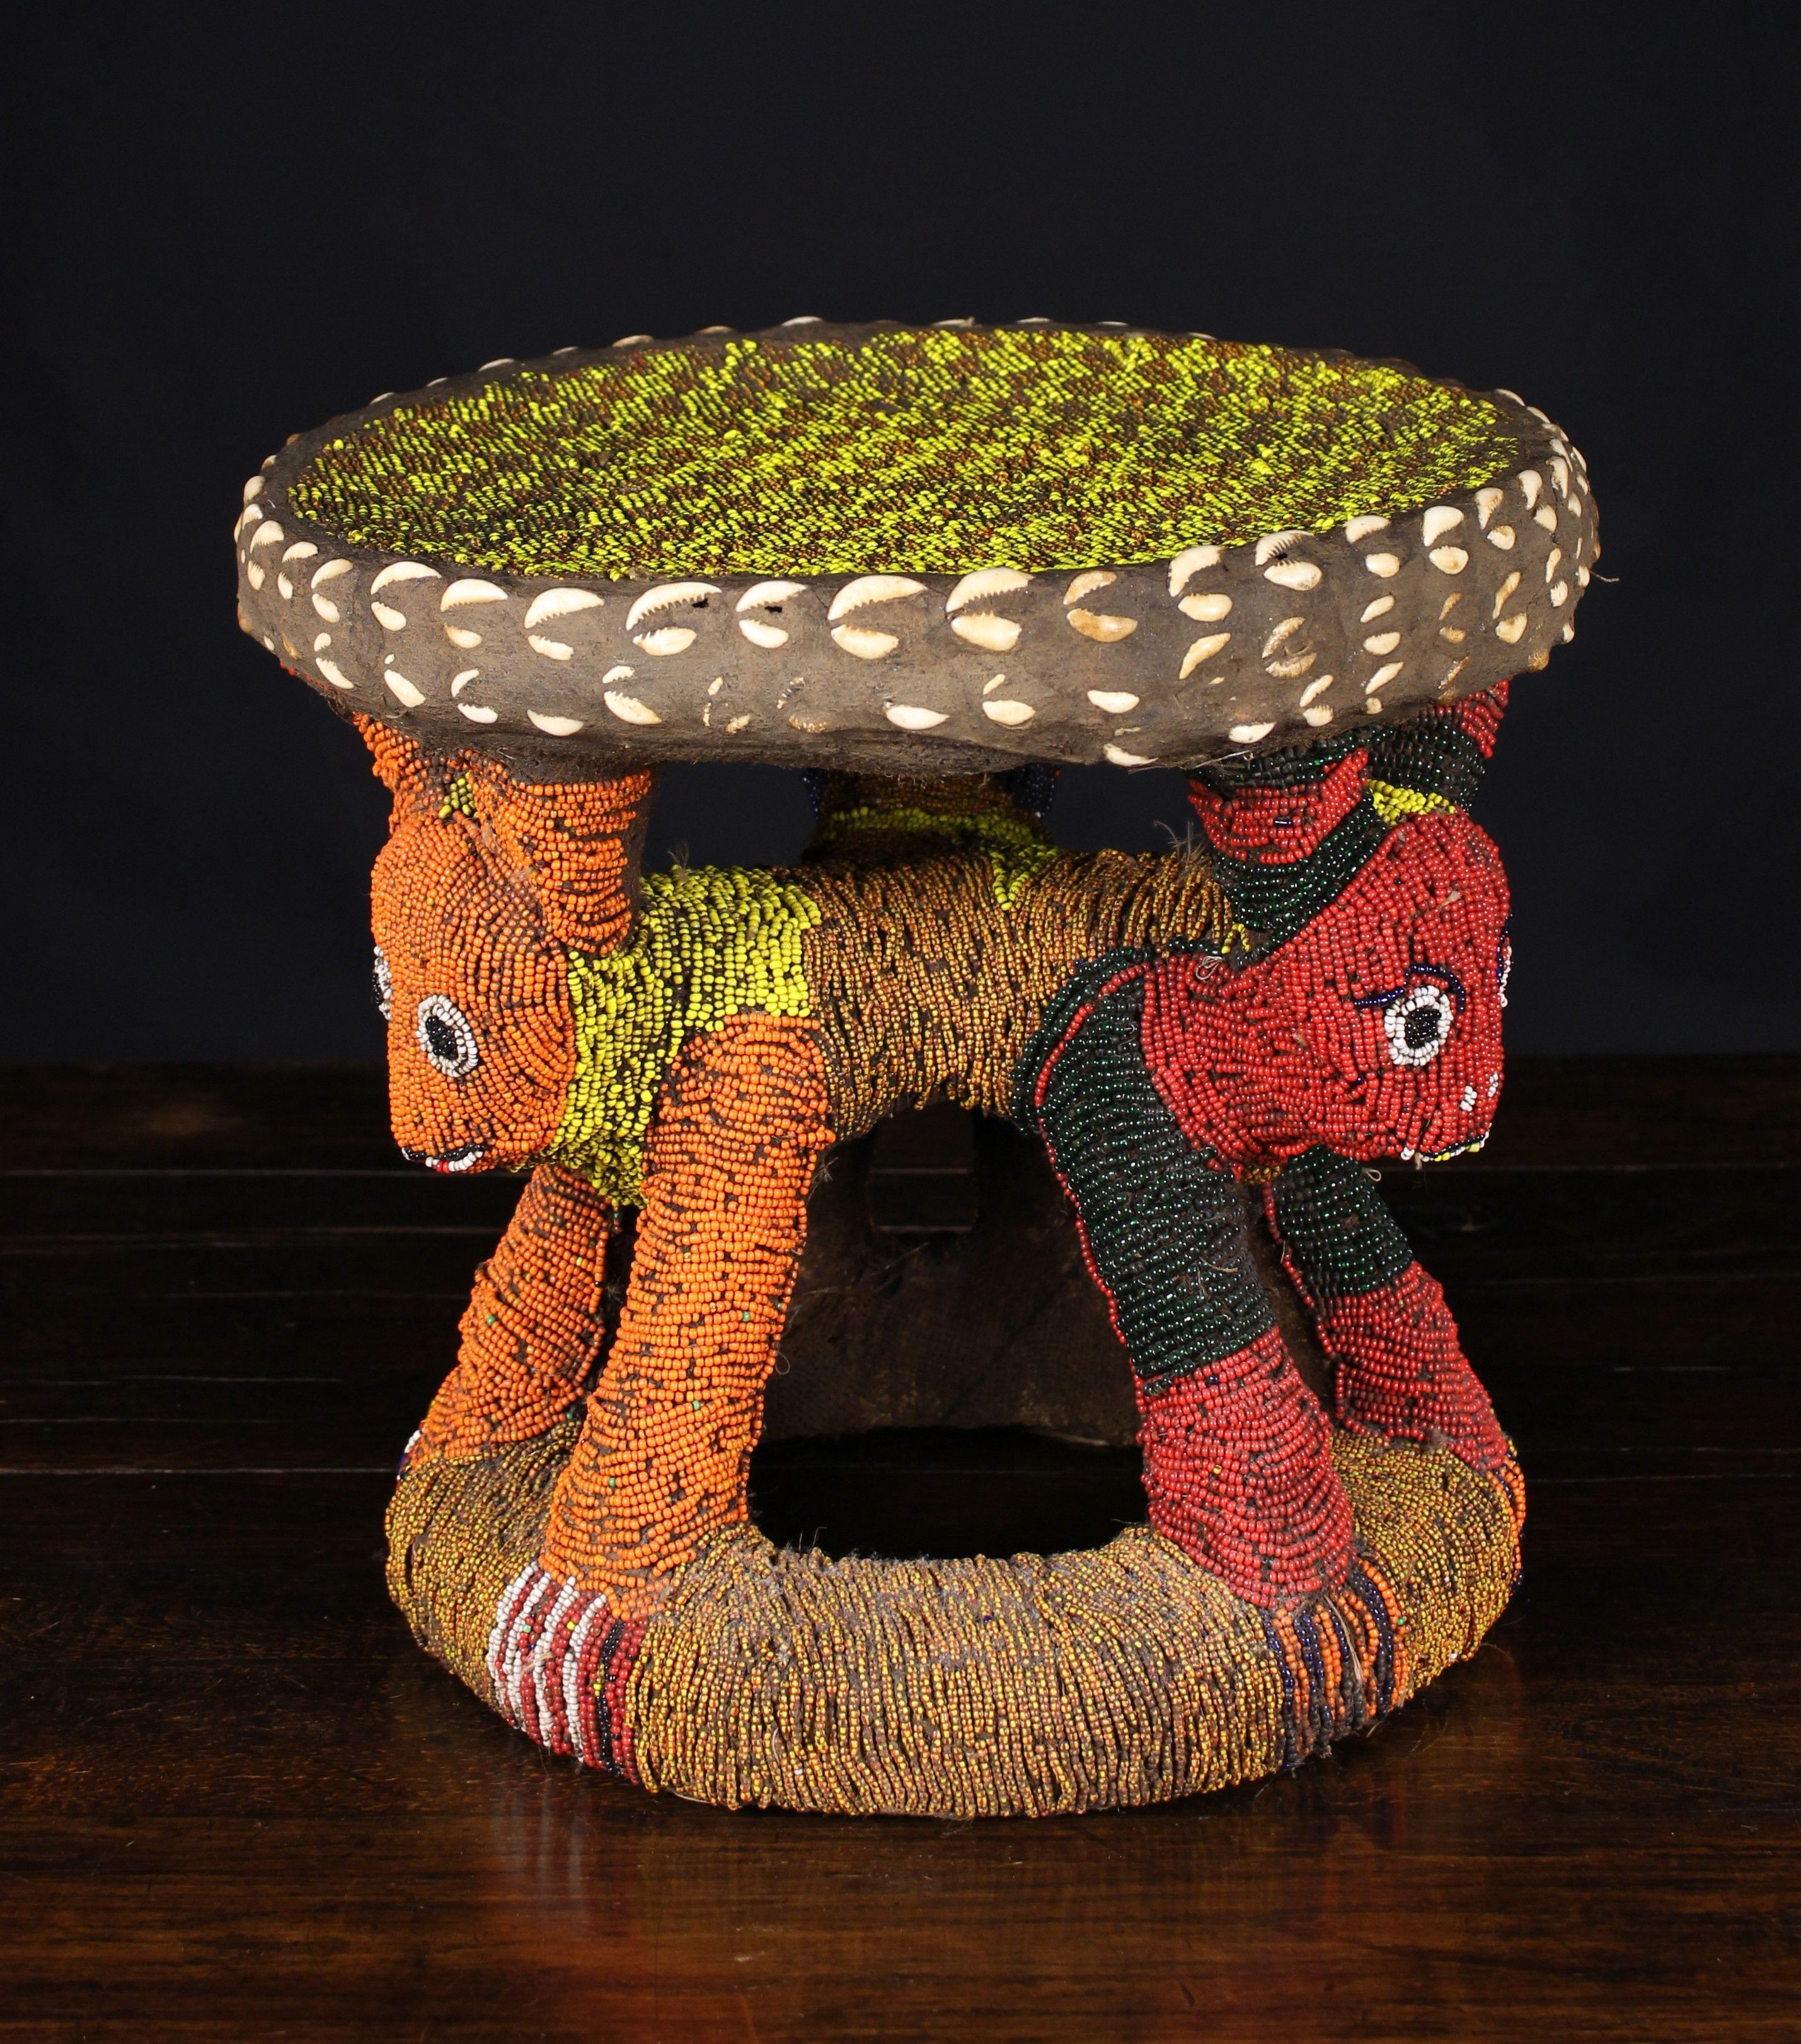 Lot 113 An Early To Mid 20thcentury Stunning And Rare Bamileke Beaded Queen Stool The Carved Leopard Design Is Encased African Art Africa Art African Masks